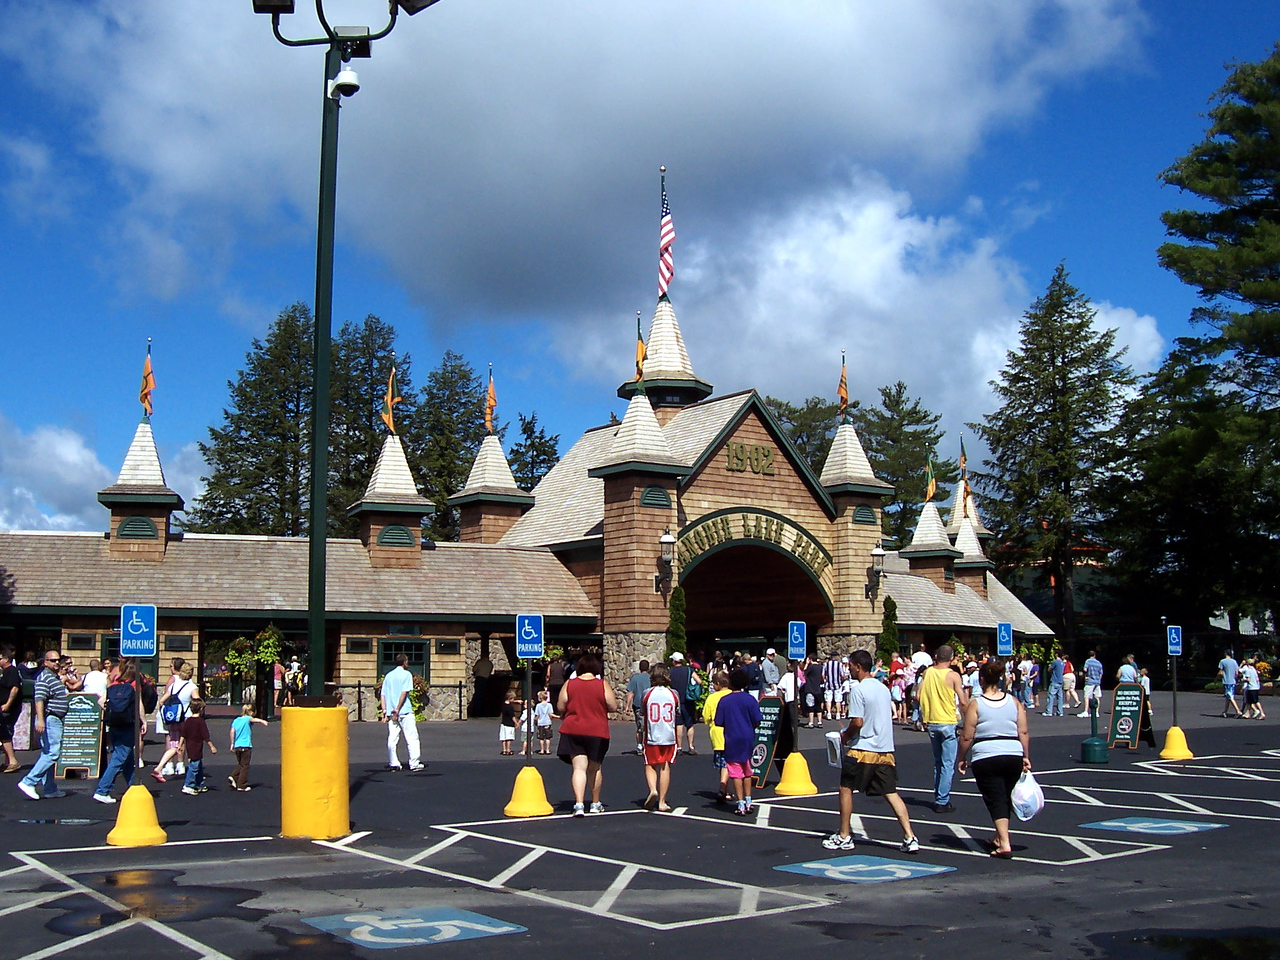 I visited Canobie Lake Park on Saturday, August 9, 2008.